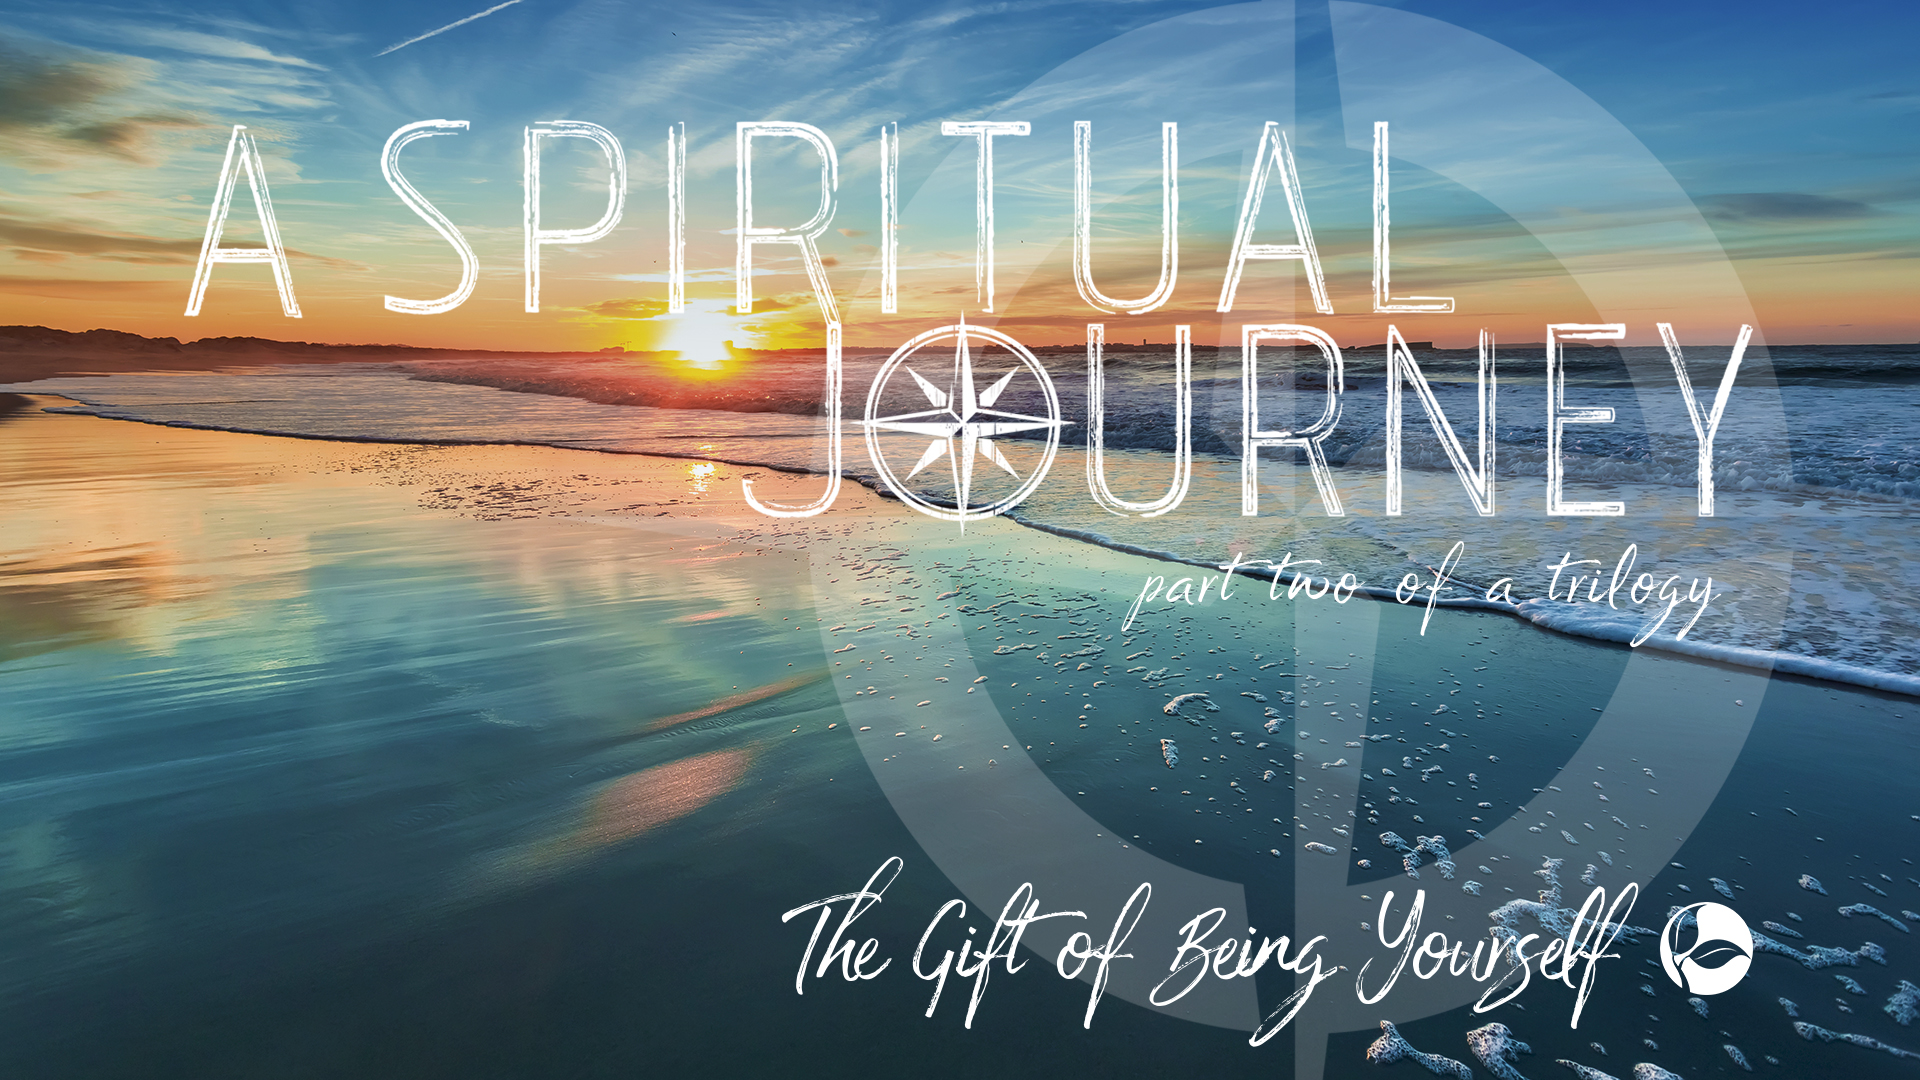 ASJ-The Gift of Being Yourself-main.jpg